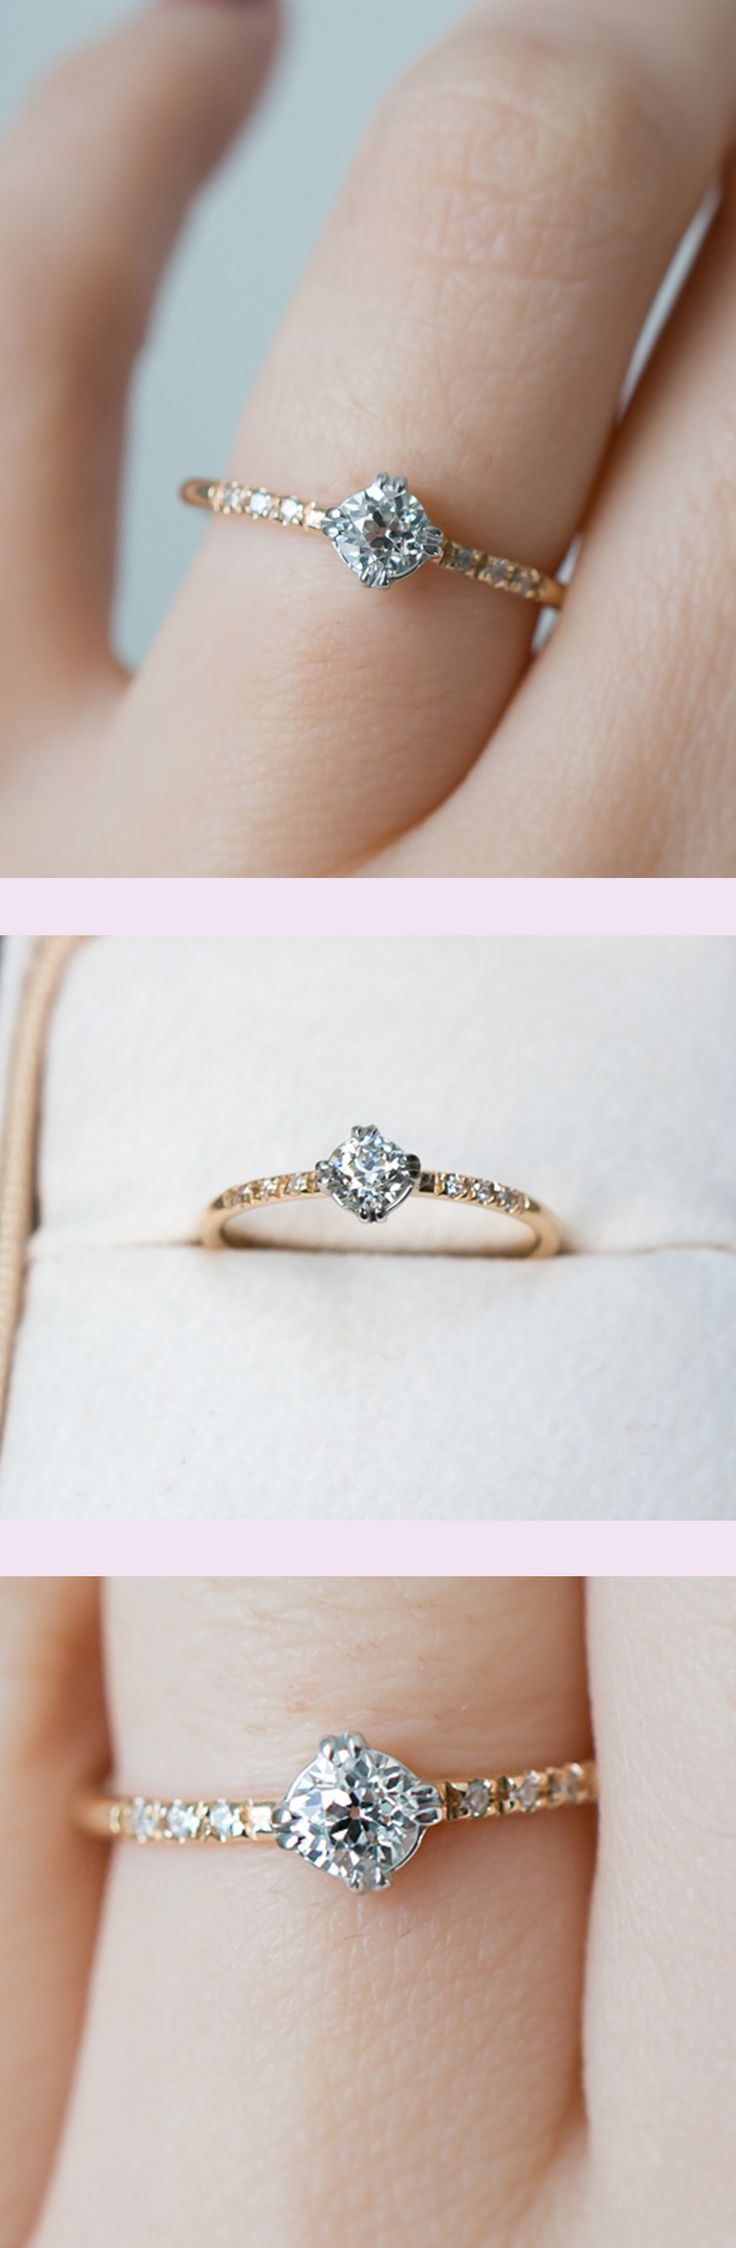 delicate engagement ring wedding rings under The sweetest vintage diamond engagement ring by S Kind